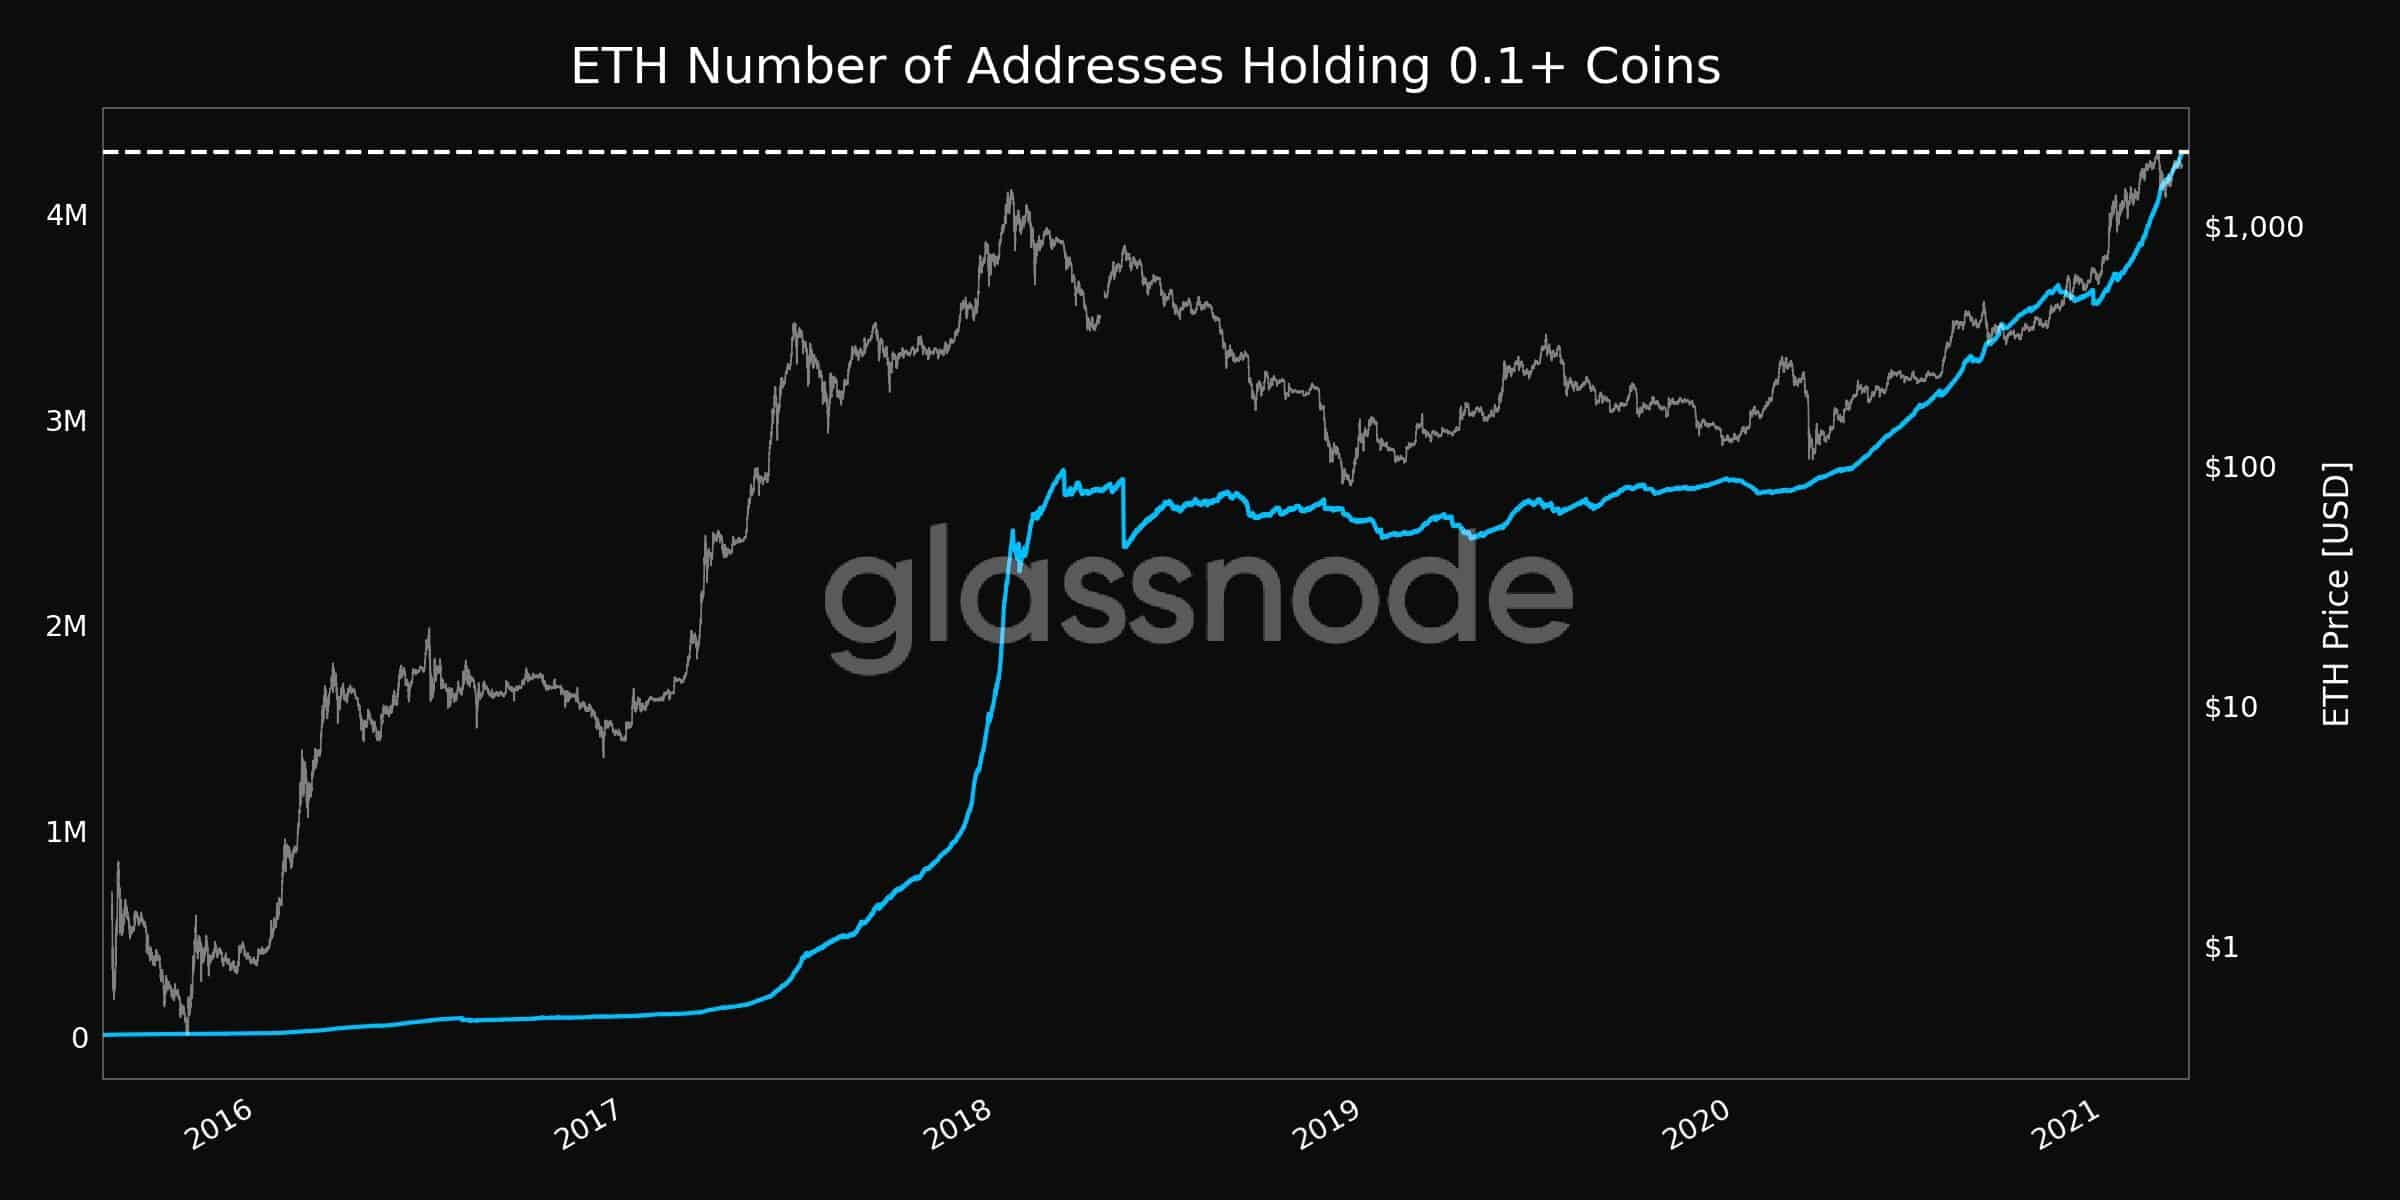 ETH Addresses with 0.1+ Coins. Source: Glassnode